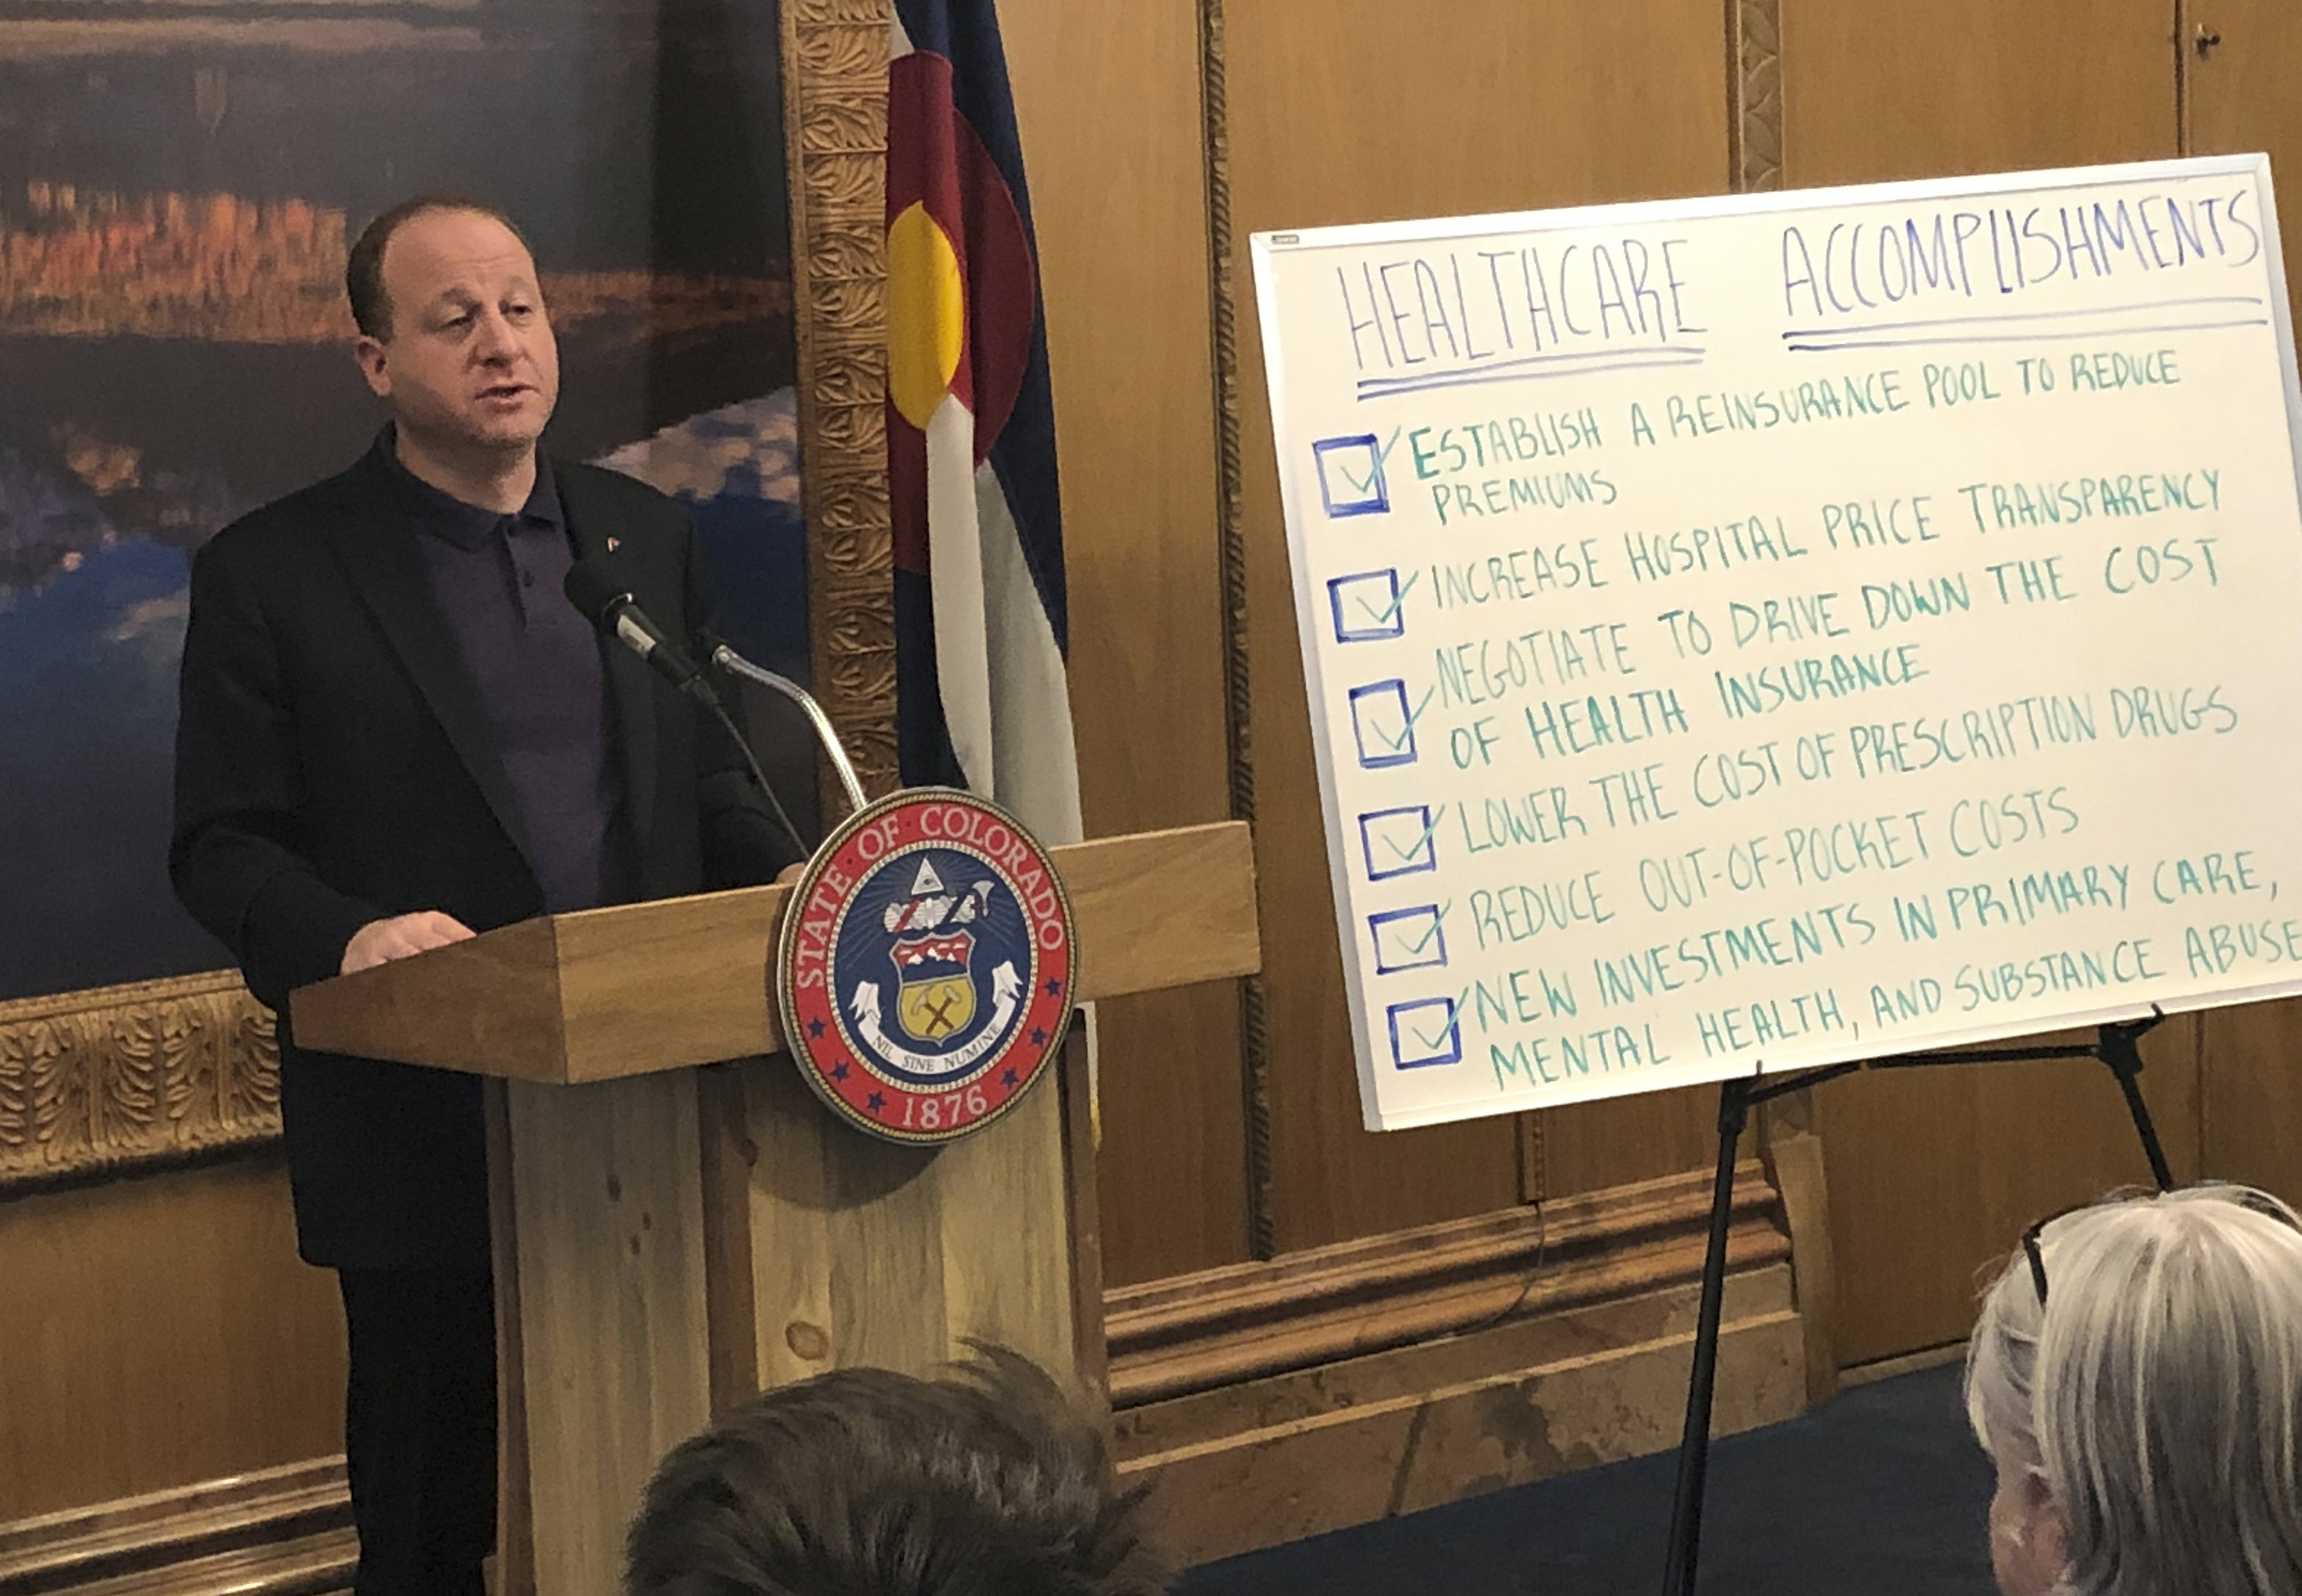 <p>Colorado Gov. Jared Polis touts the Democrat-led legislature's accomplishments in tackling health care costs at a state Capitol briefing on Friday, May 3, 2019, in Denver.</p>